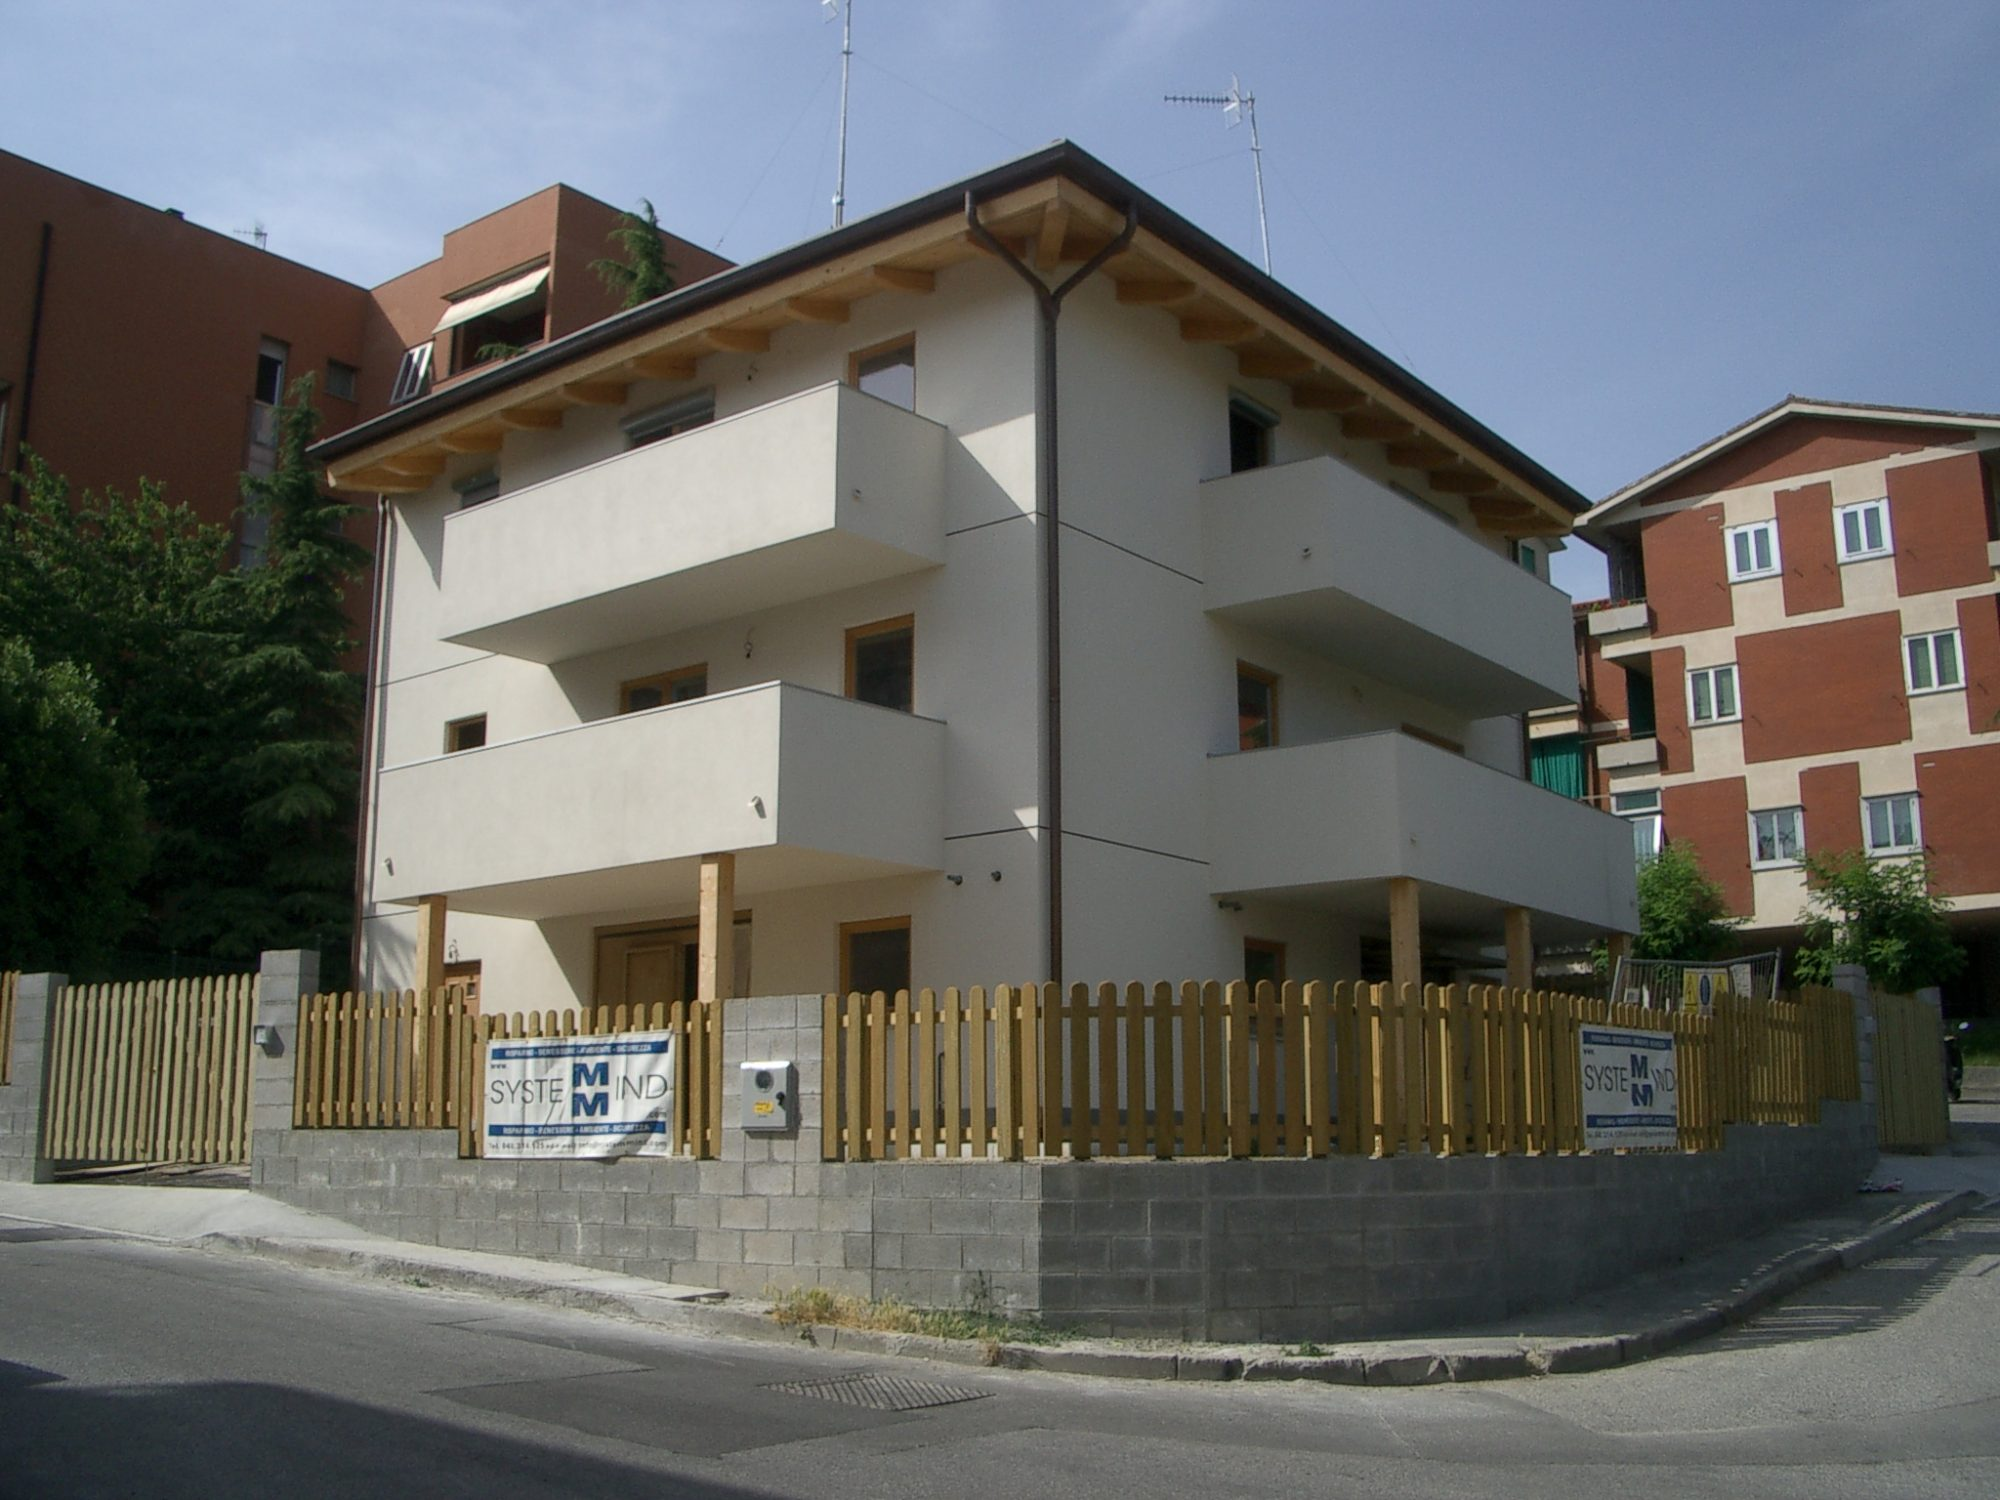 House with several aparements